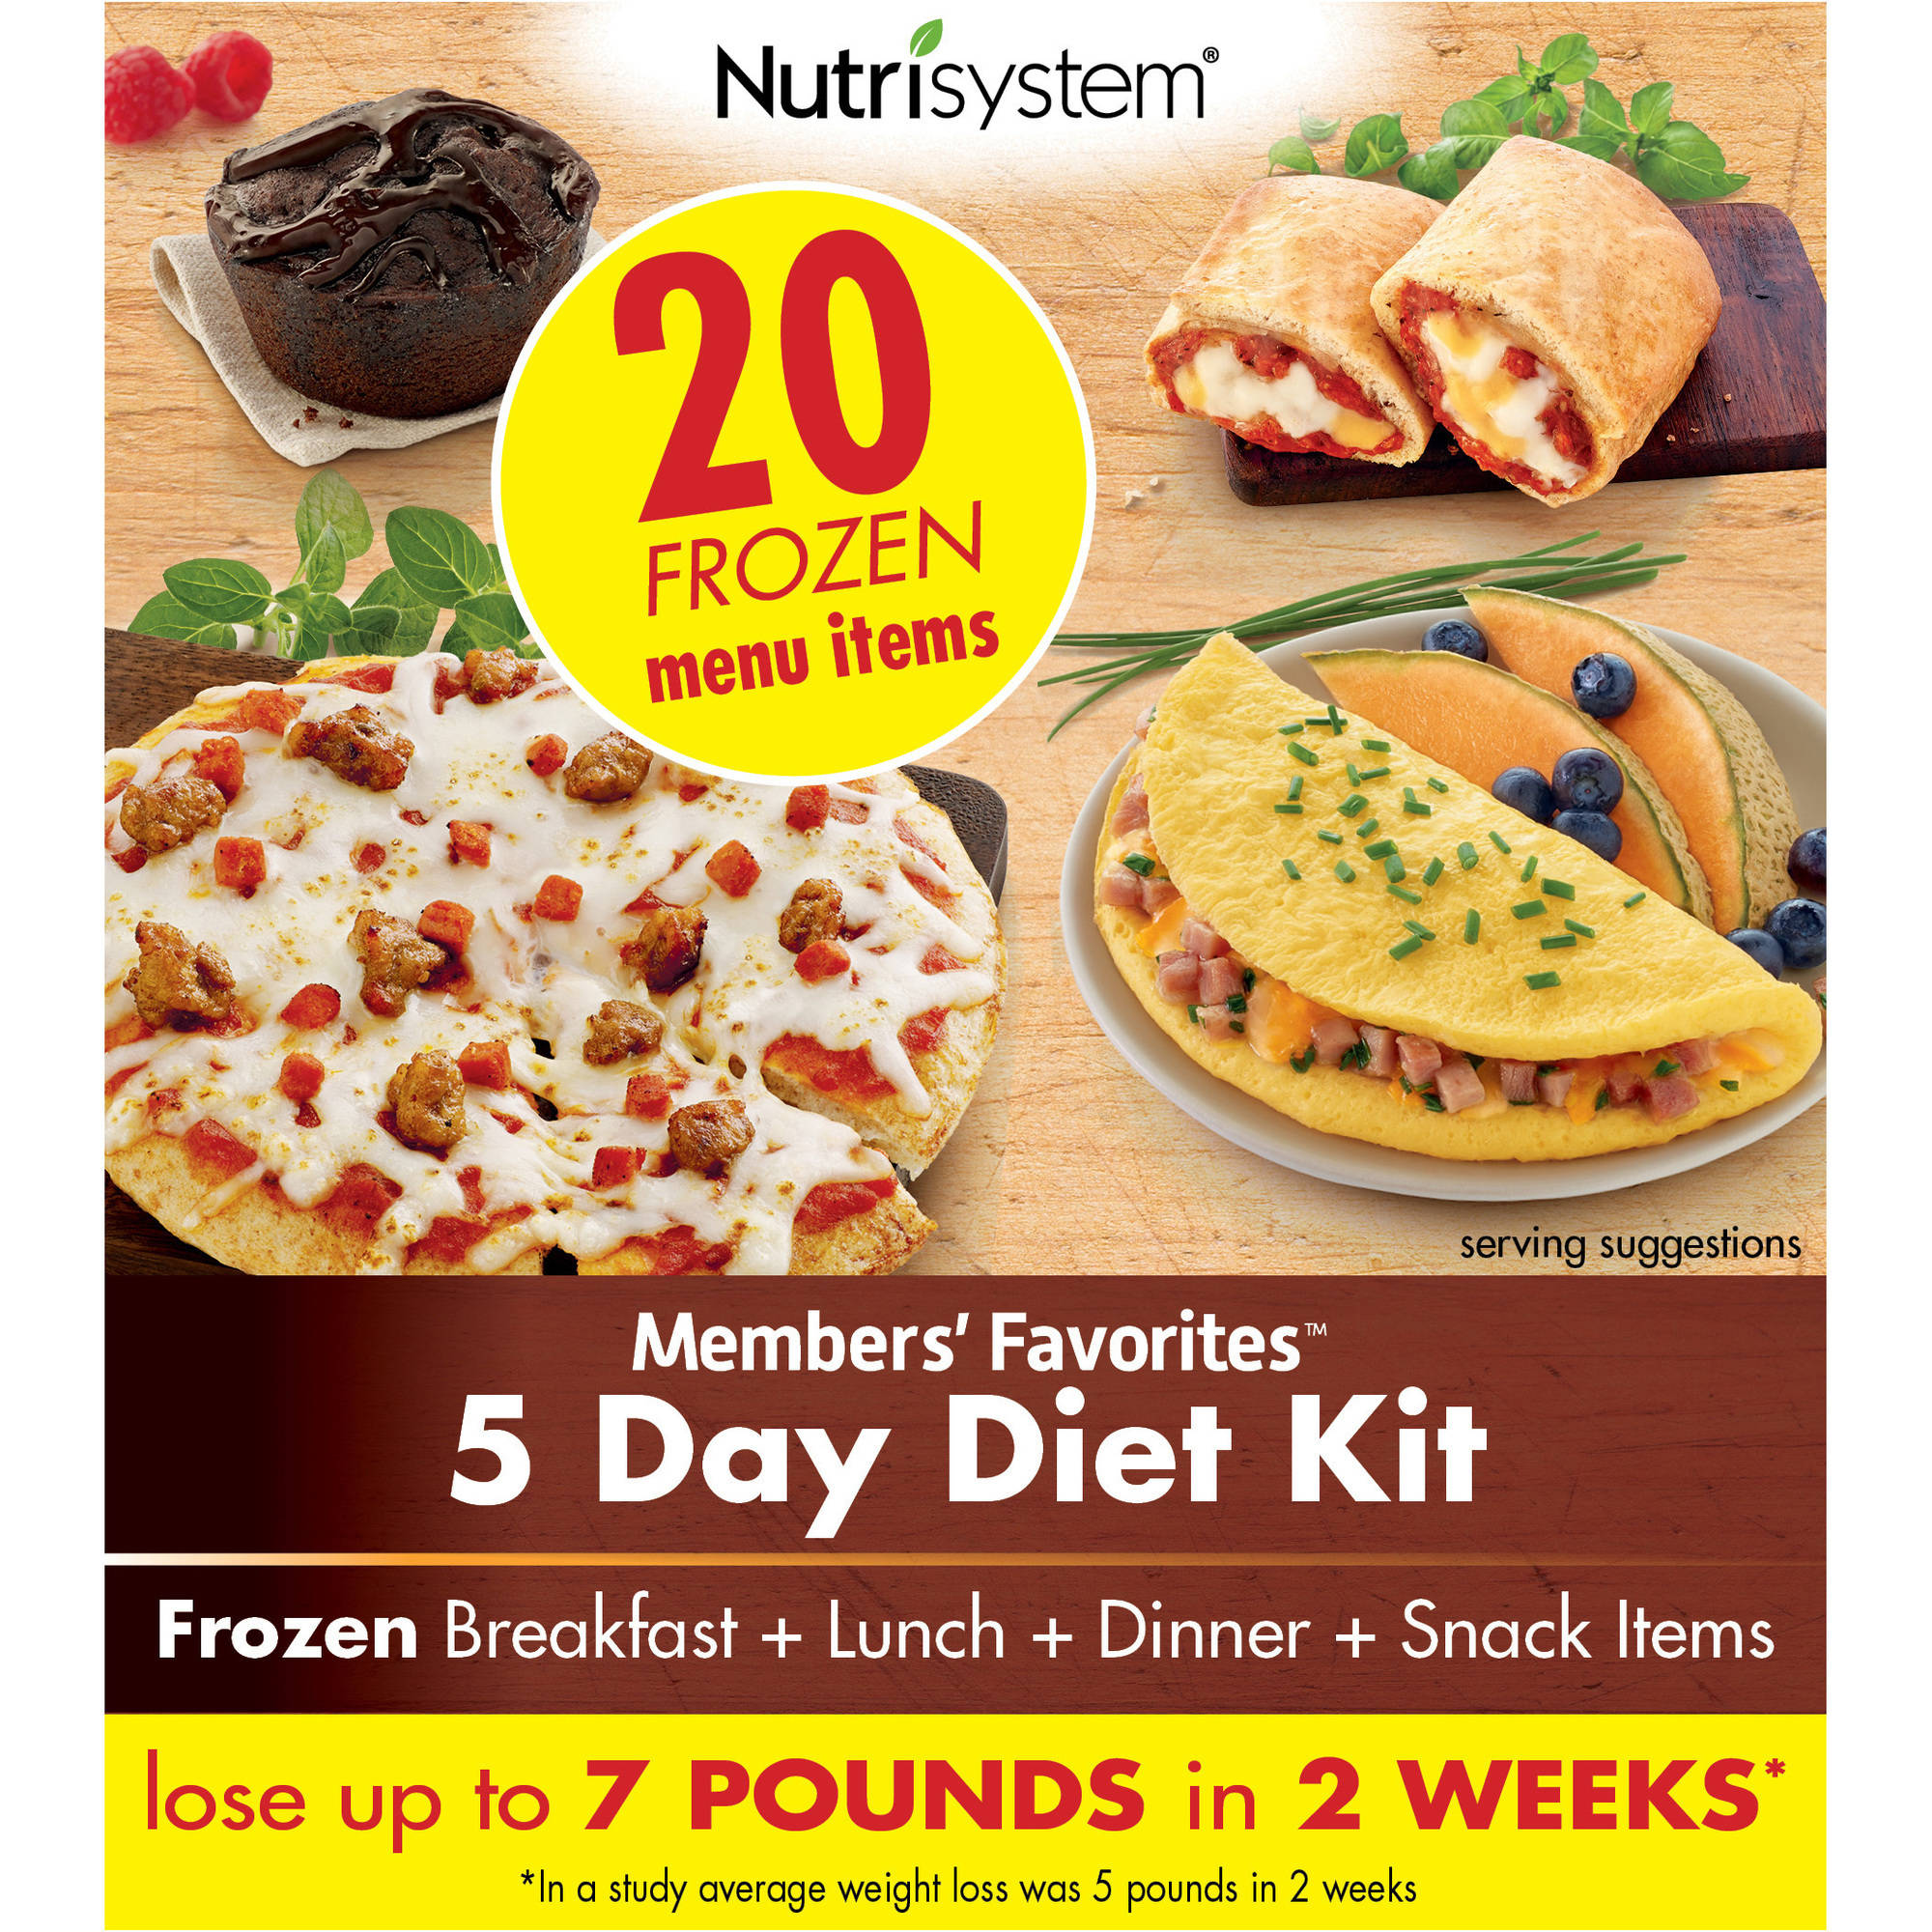 Nutrisystem Members' Favorites 5 Day Diet Kit